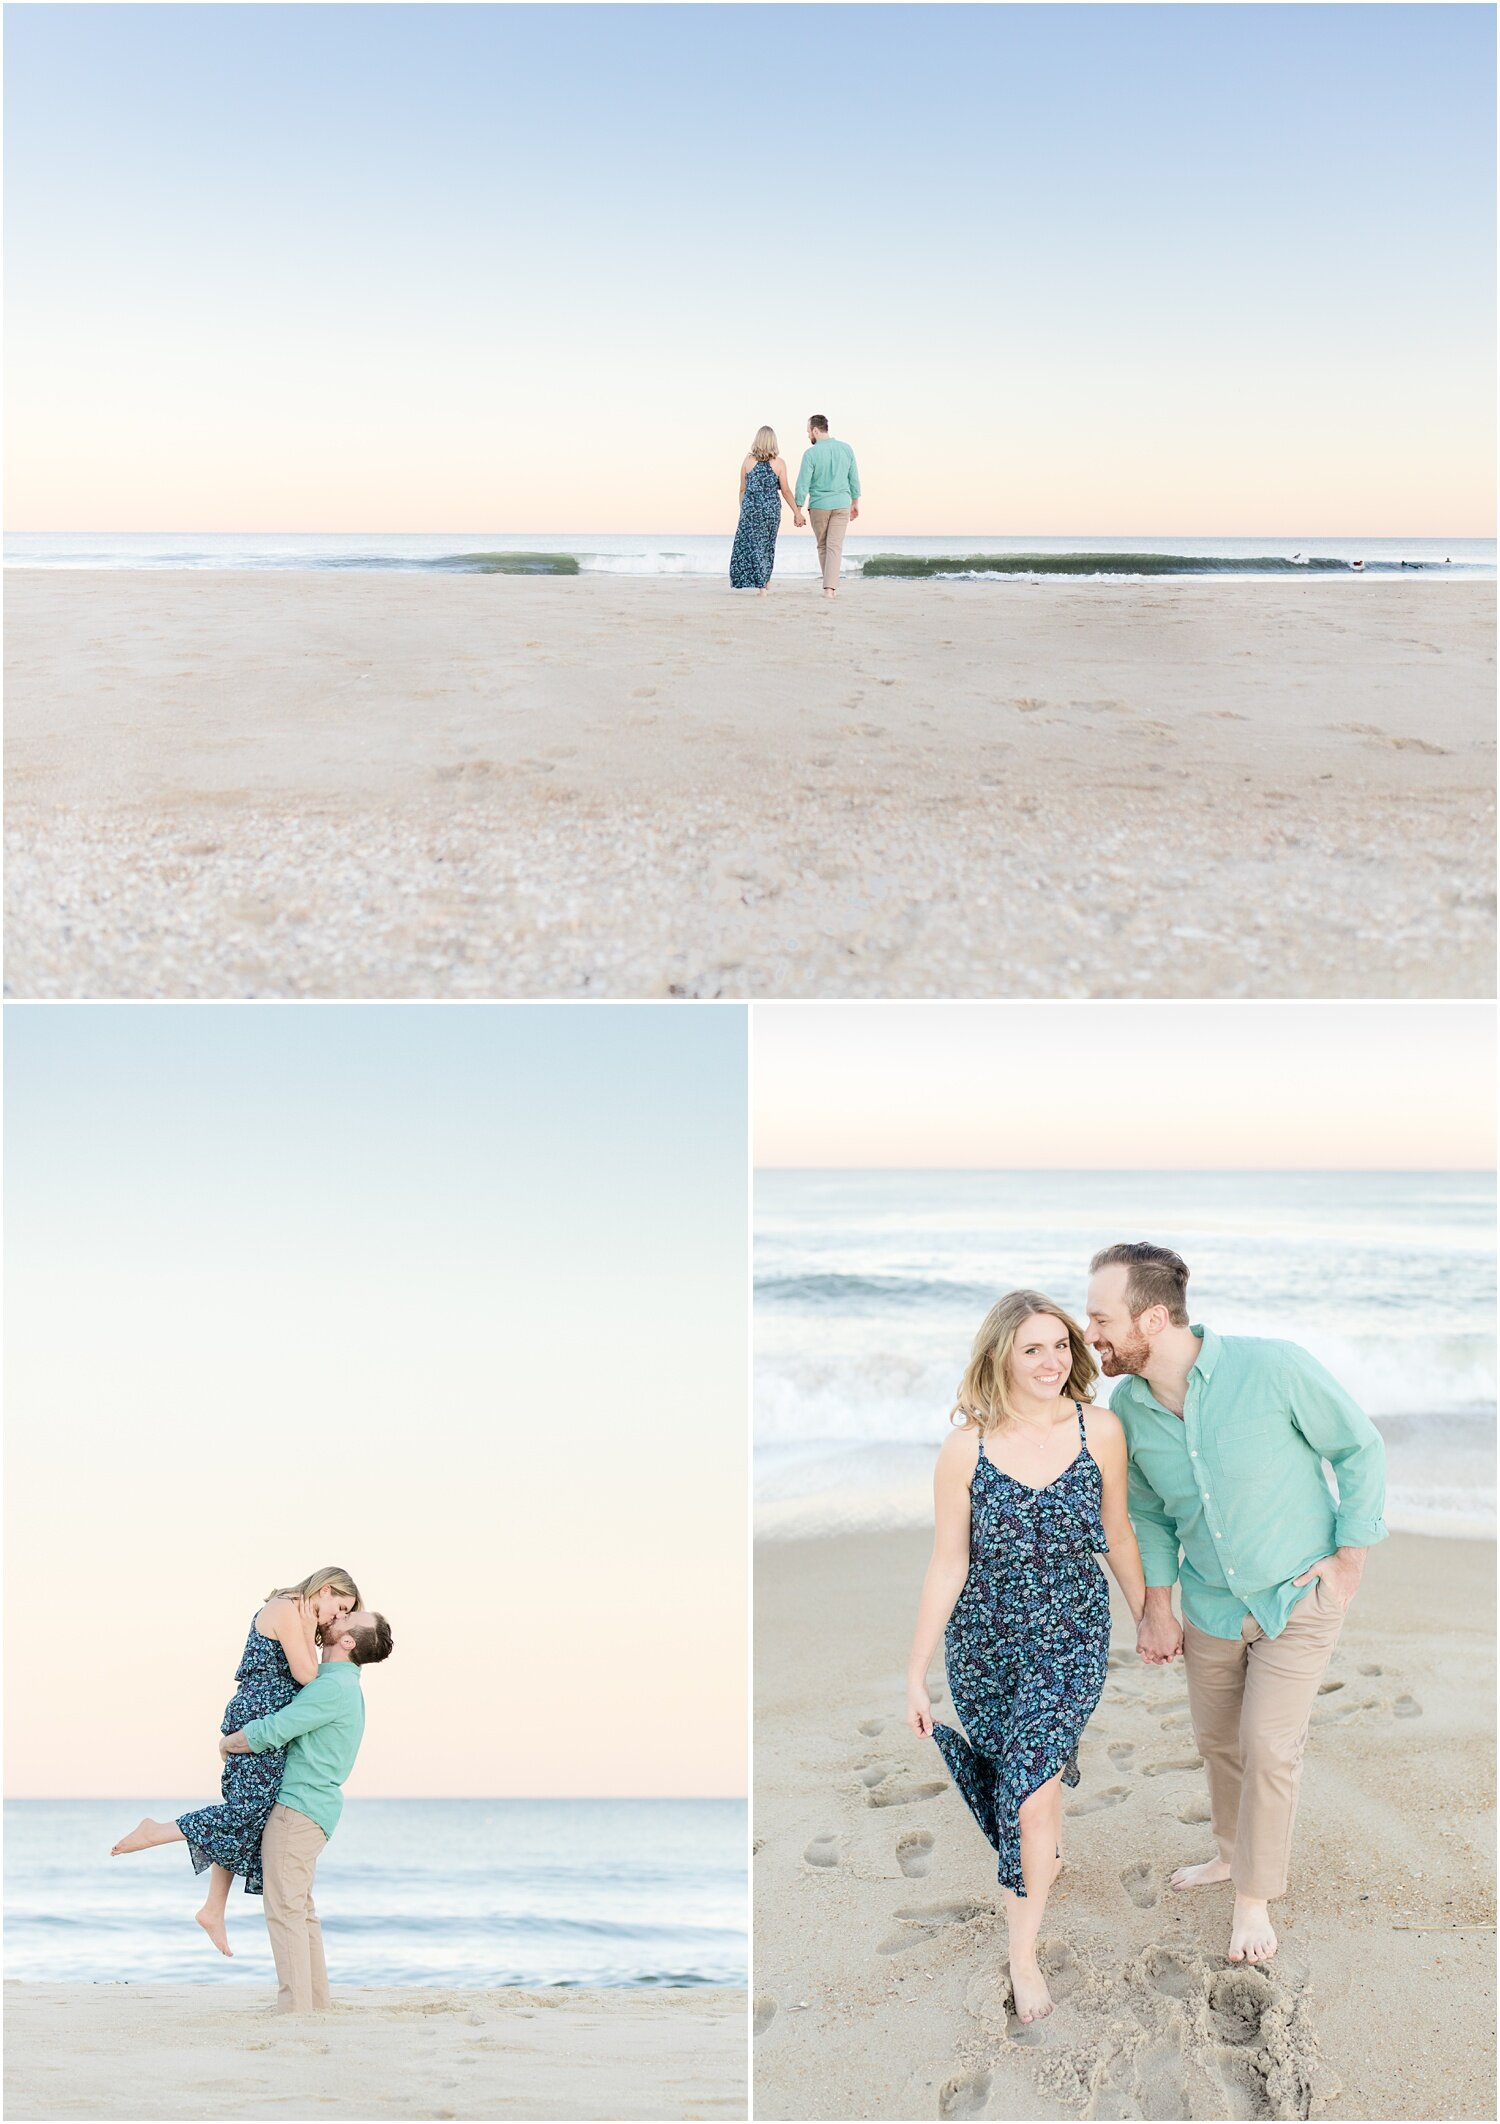 Fun beach engagement photos at the Jersey Shore.